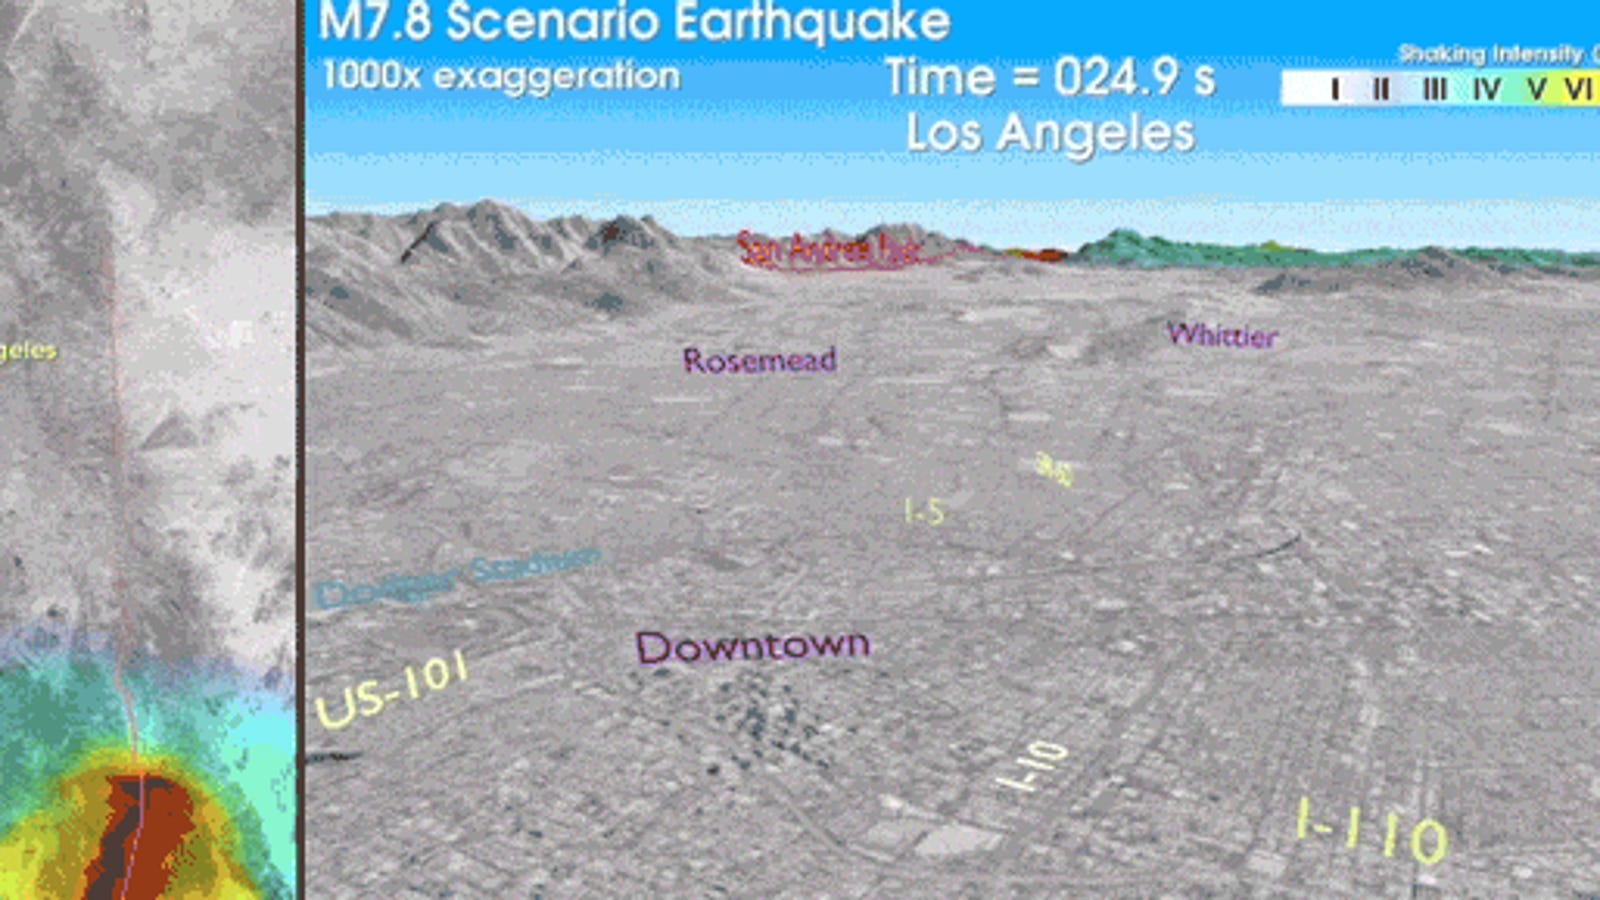 Earthquake Early Warning Systems Save Lives  So Why Don't We Have One?